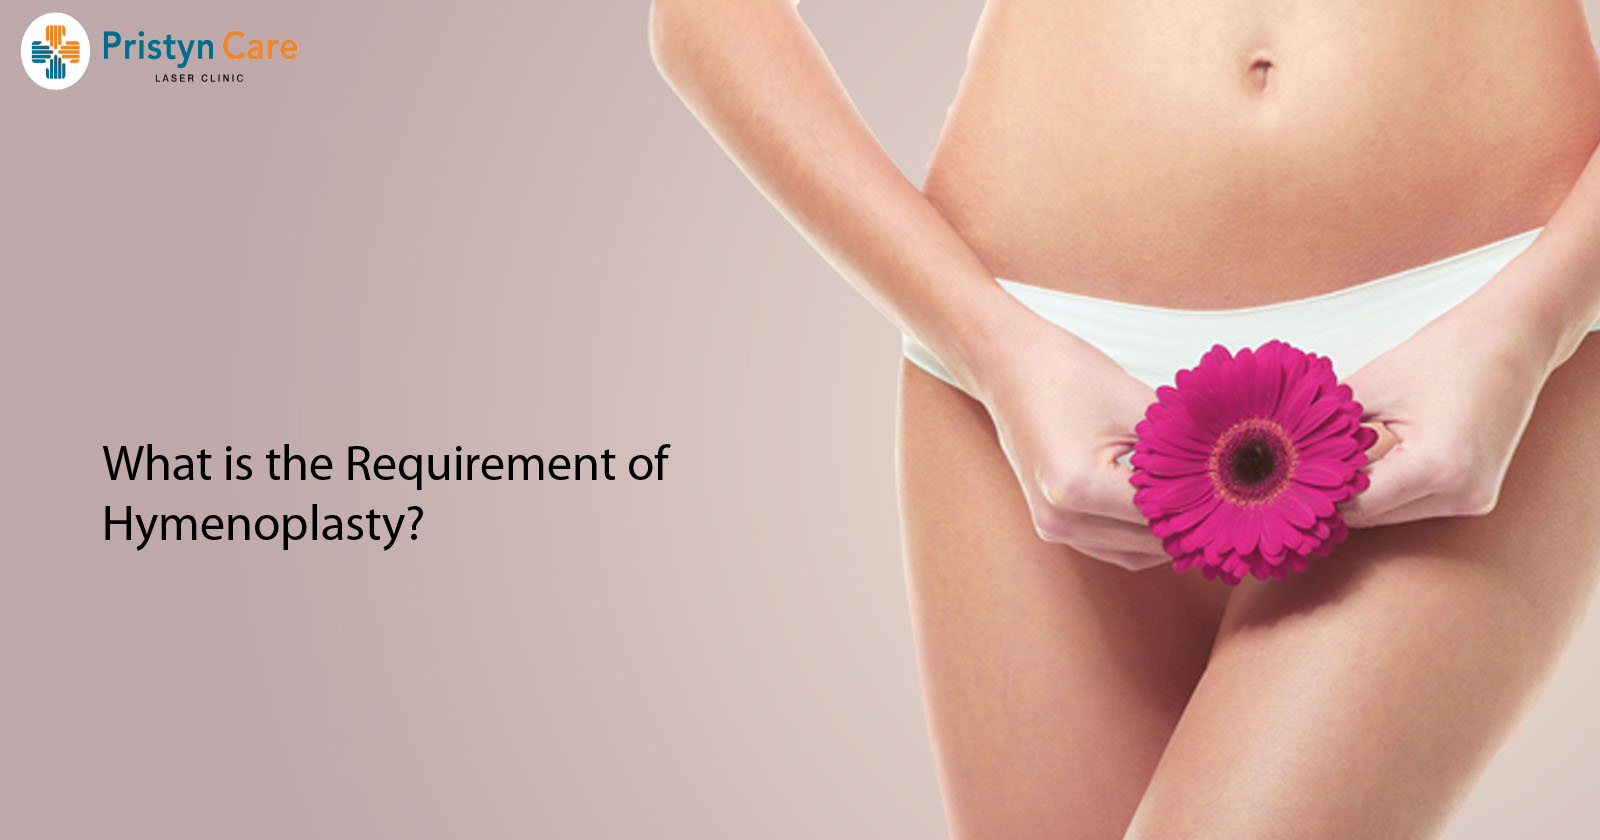 What is the Requirement of Hymenoplasty?